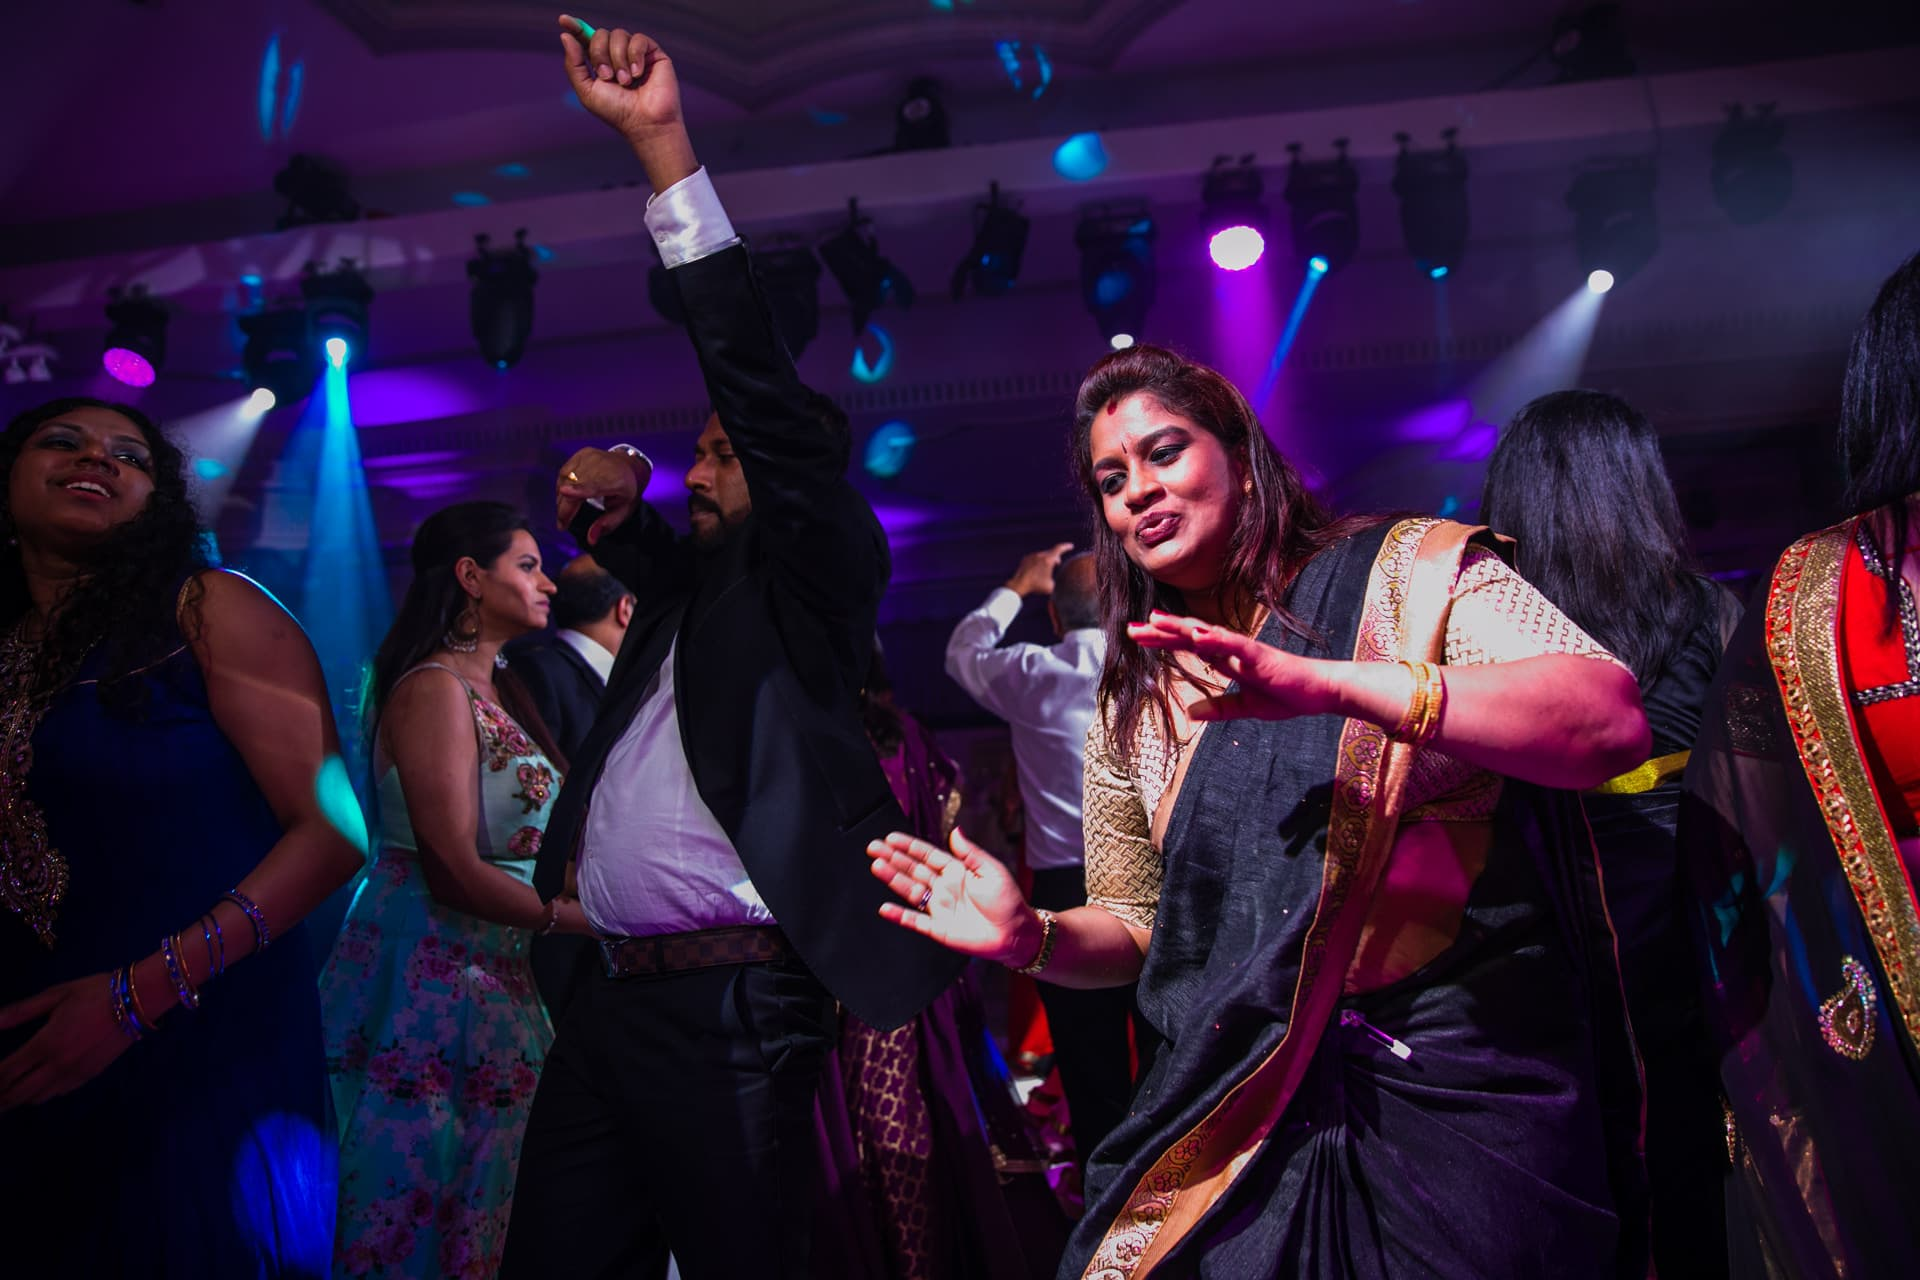 Wedding reception party at The Dorchester hotel